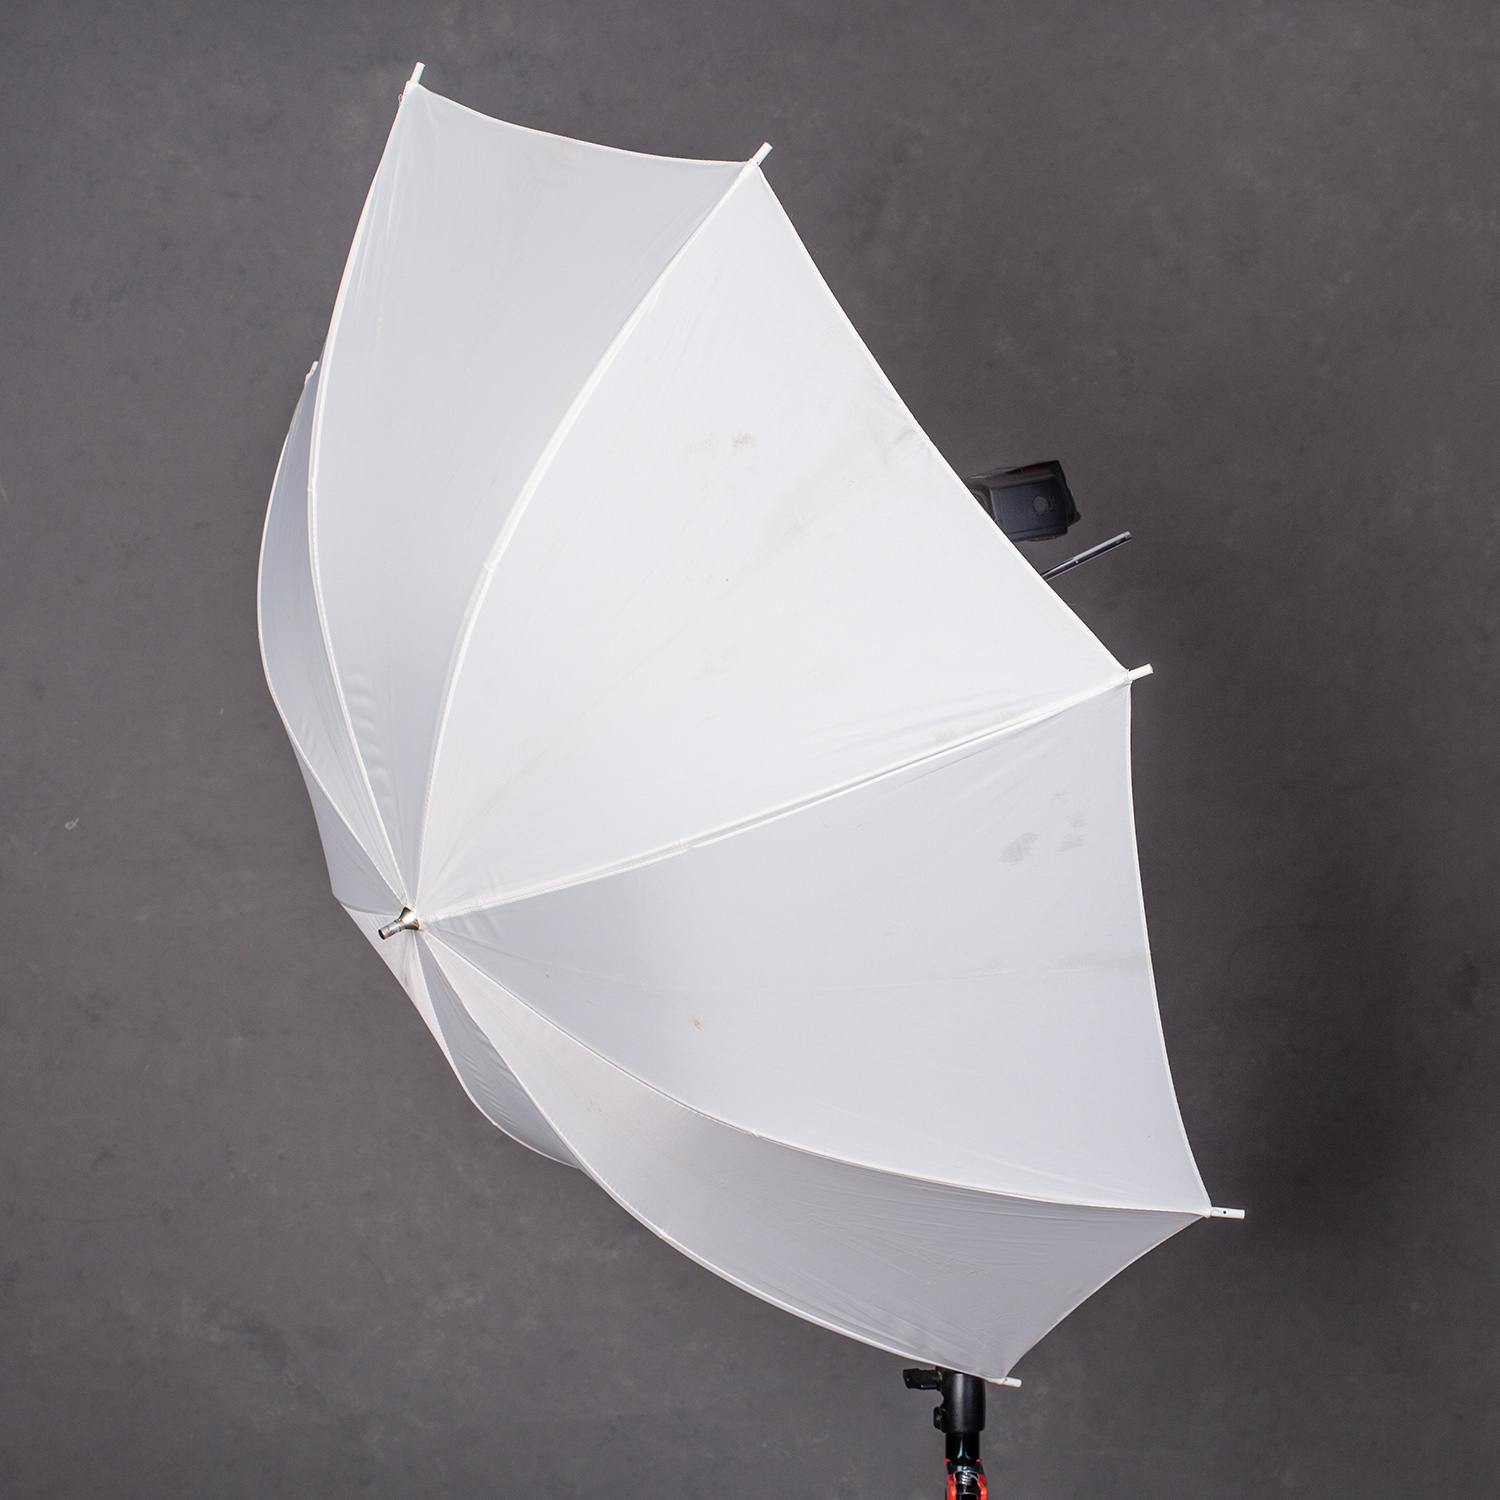 Image: Translucent umbrellas also provide soft light, but they aren't as directional as softbo...